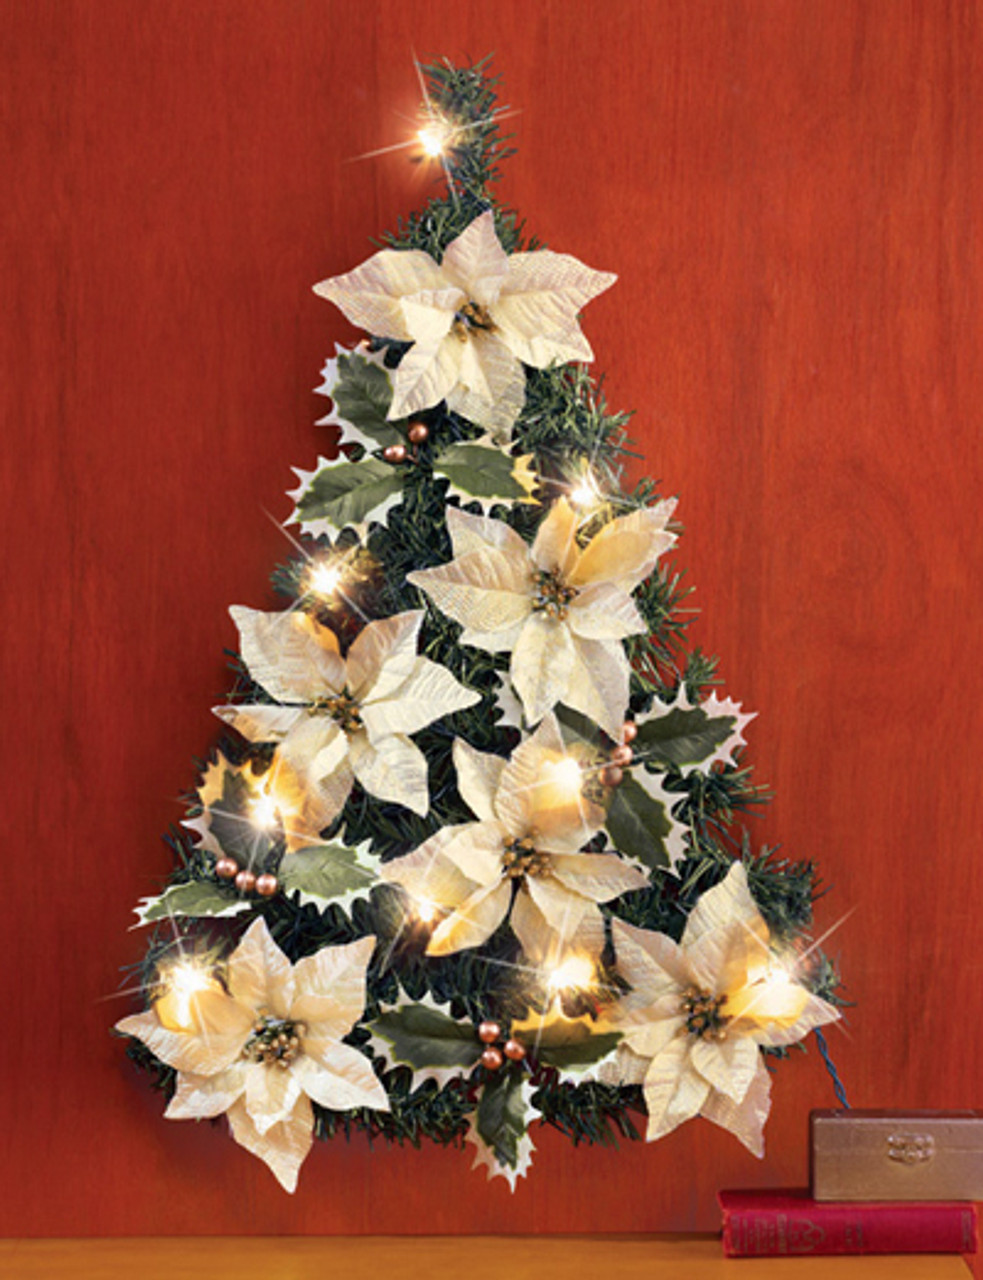 Poinsettia Christmas Tree Wall Decoration - Birddog Lighting